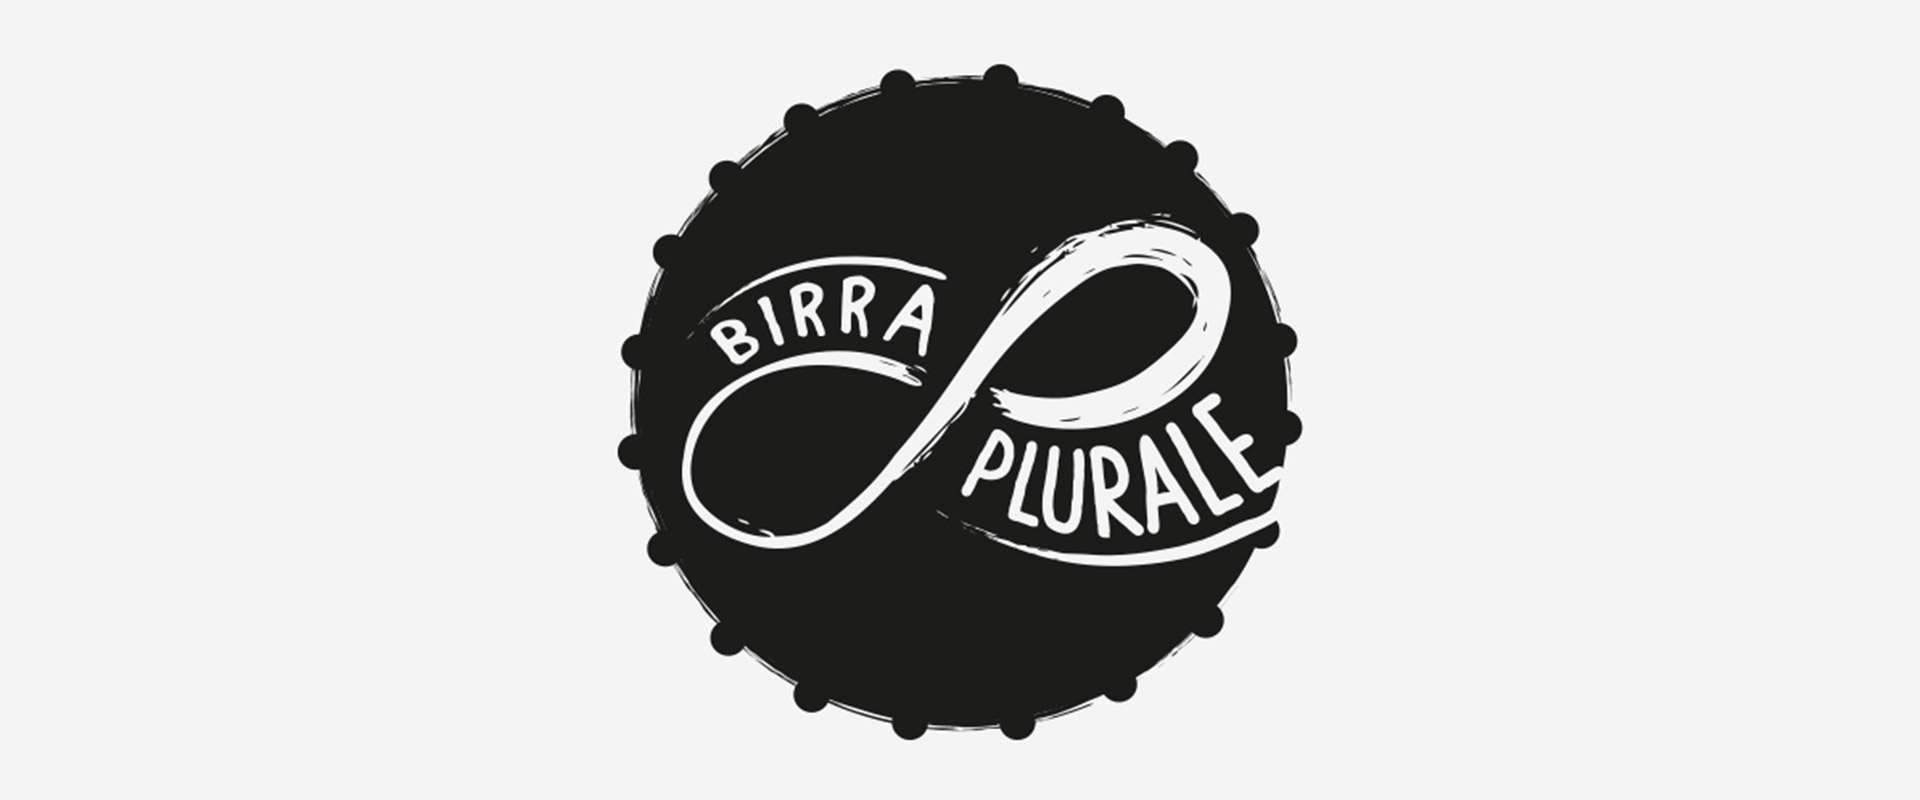 Be Singular, Think Plural: scopri il Birrificio Plurale